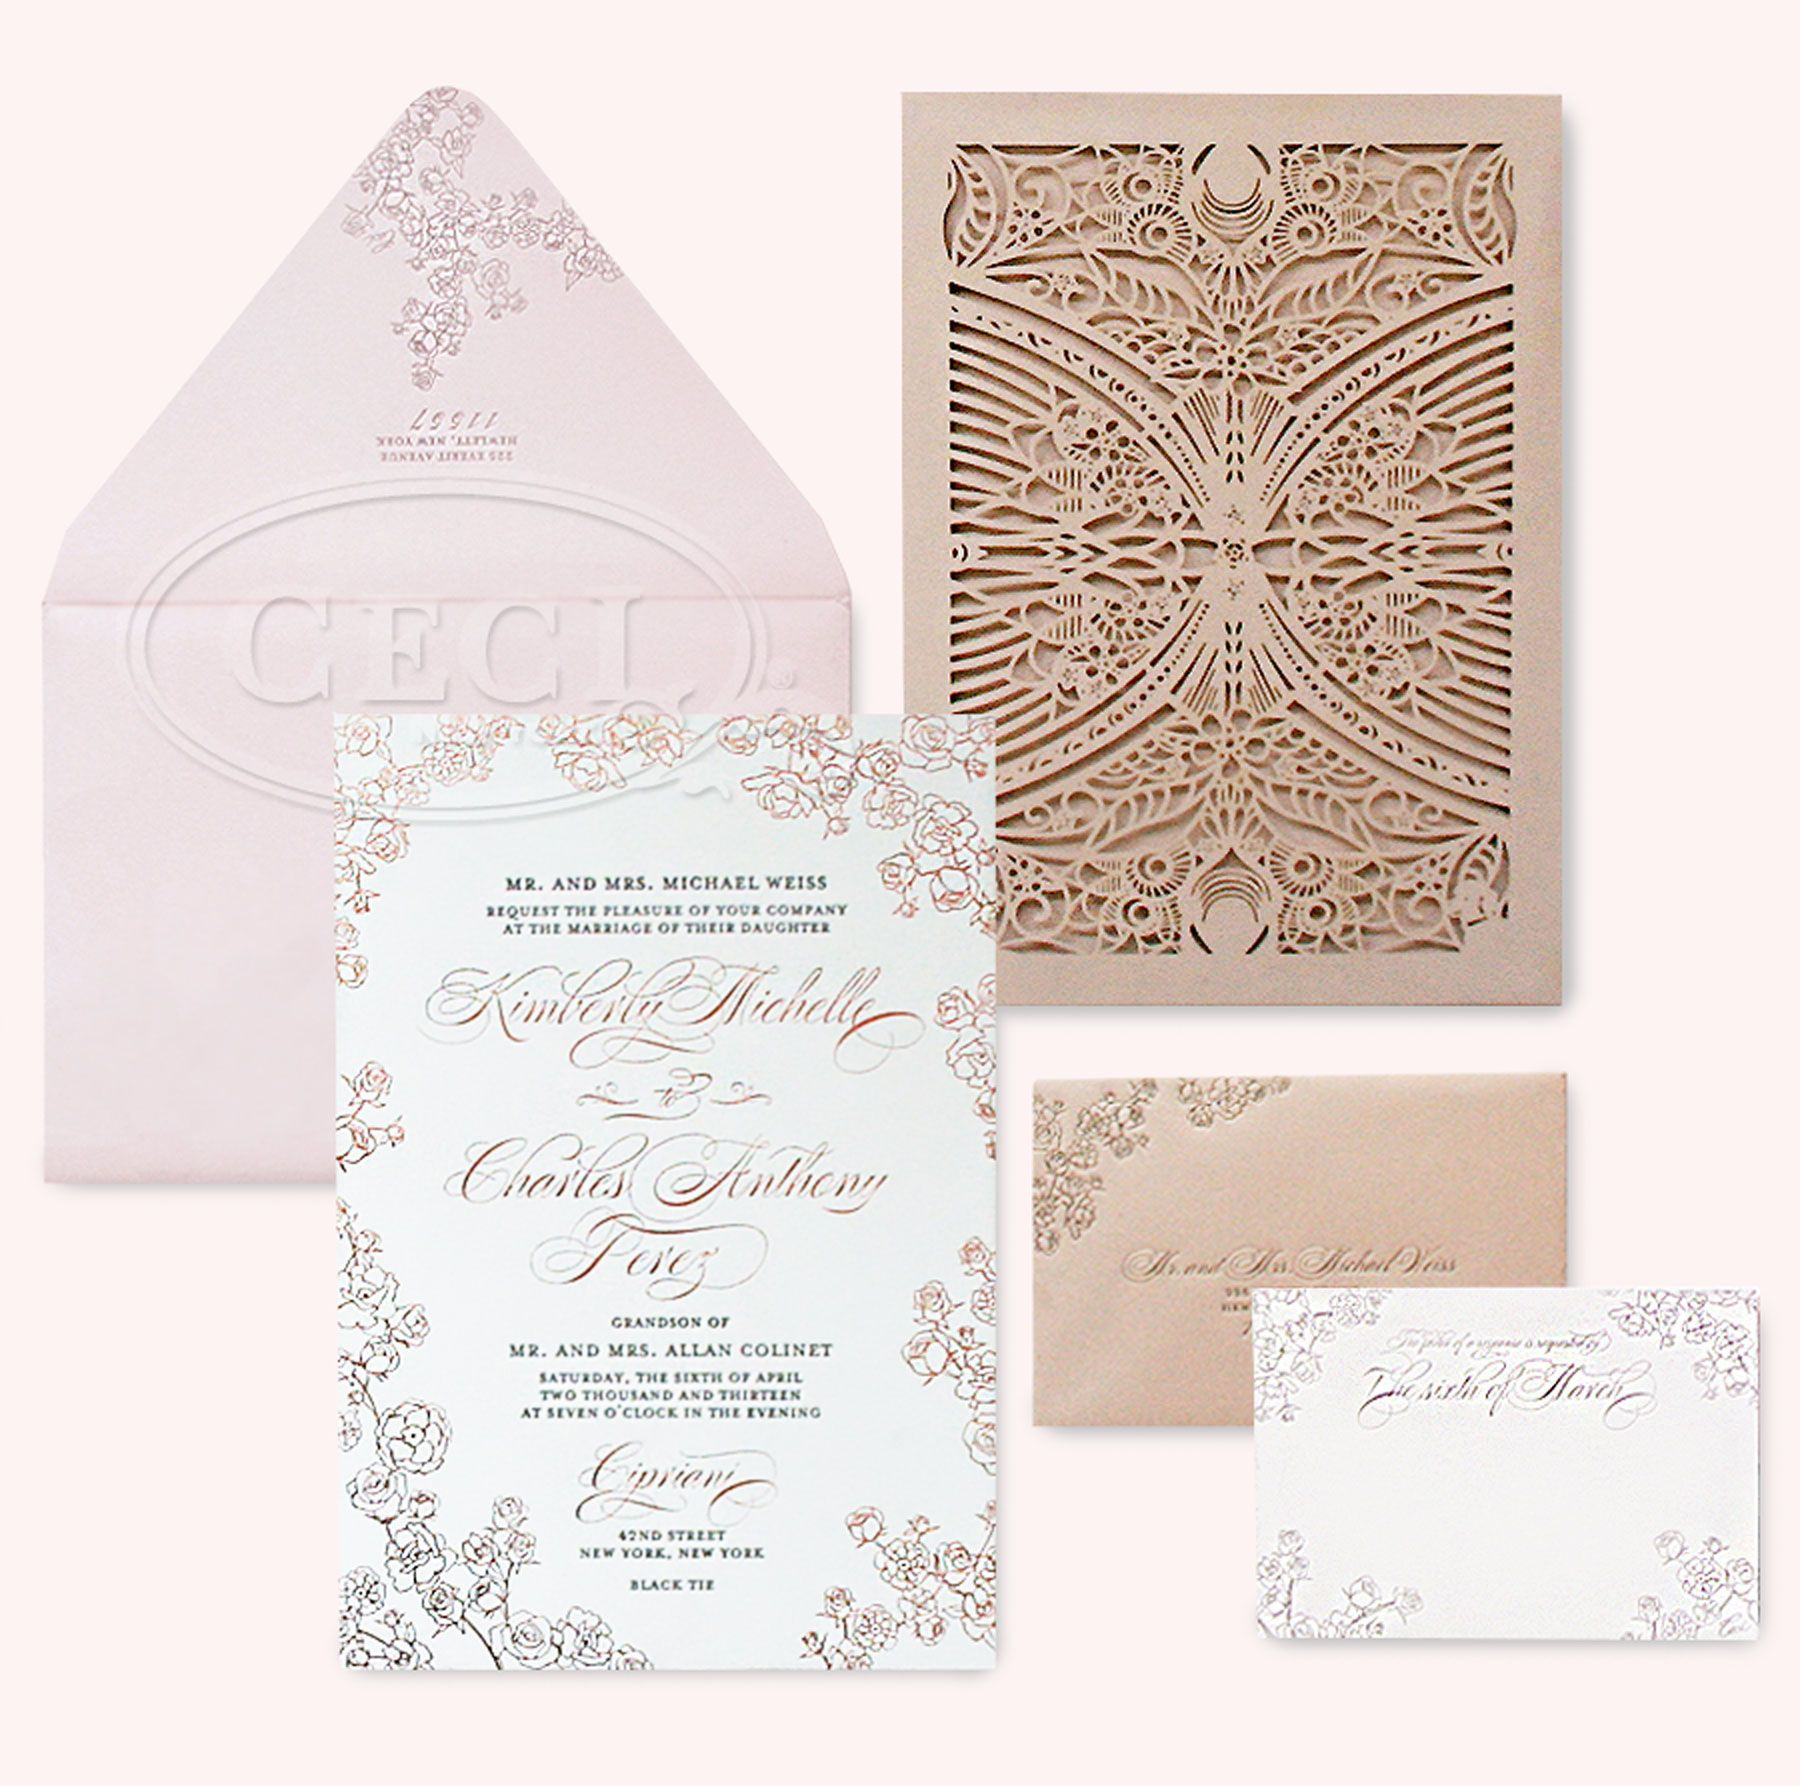 michaels wedding invites Lasercuts fonts and florals oh my Luxury Wedding Invitations by Ceci New